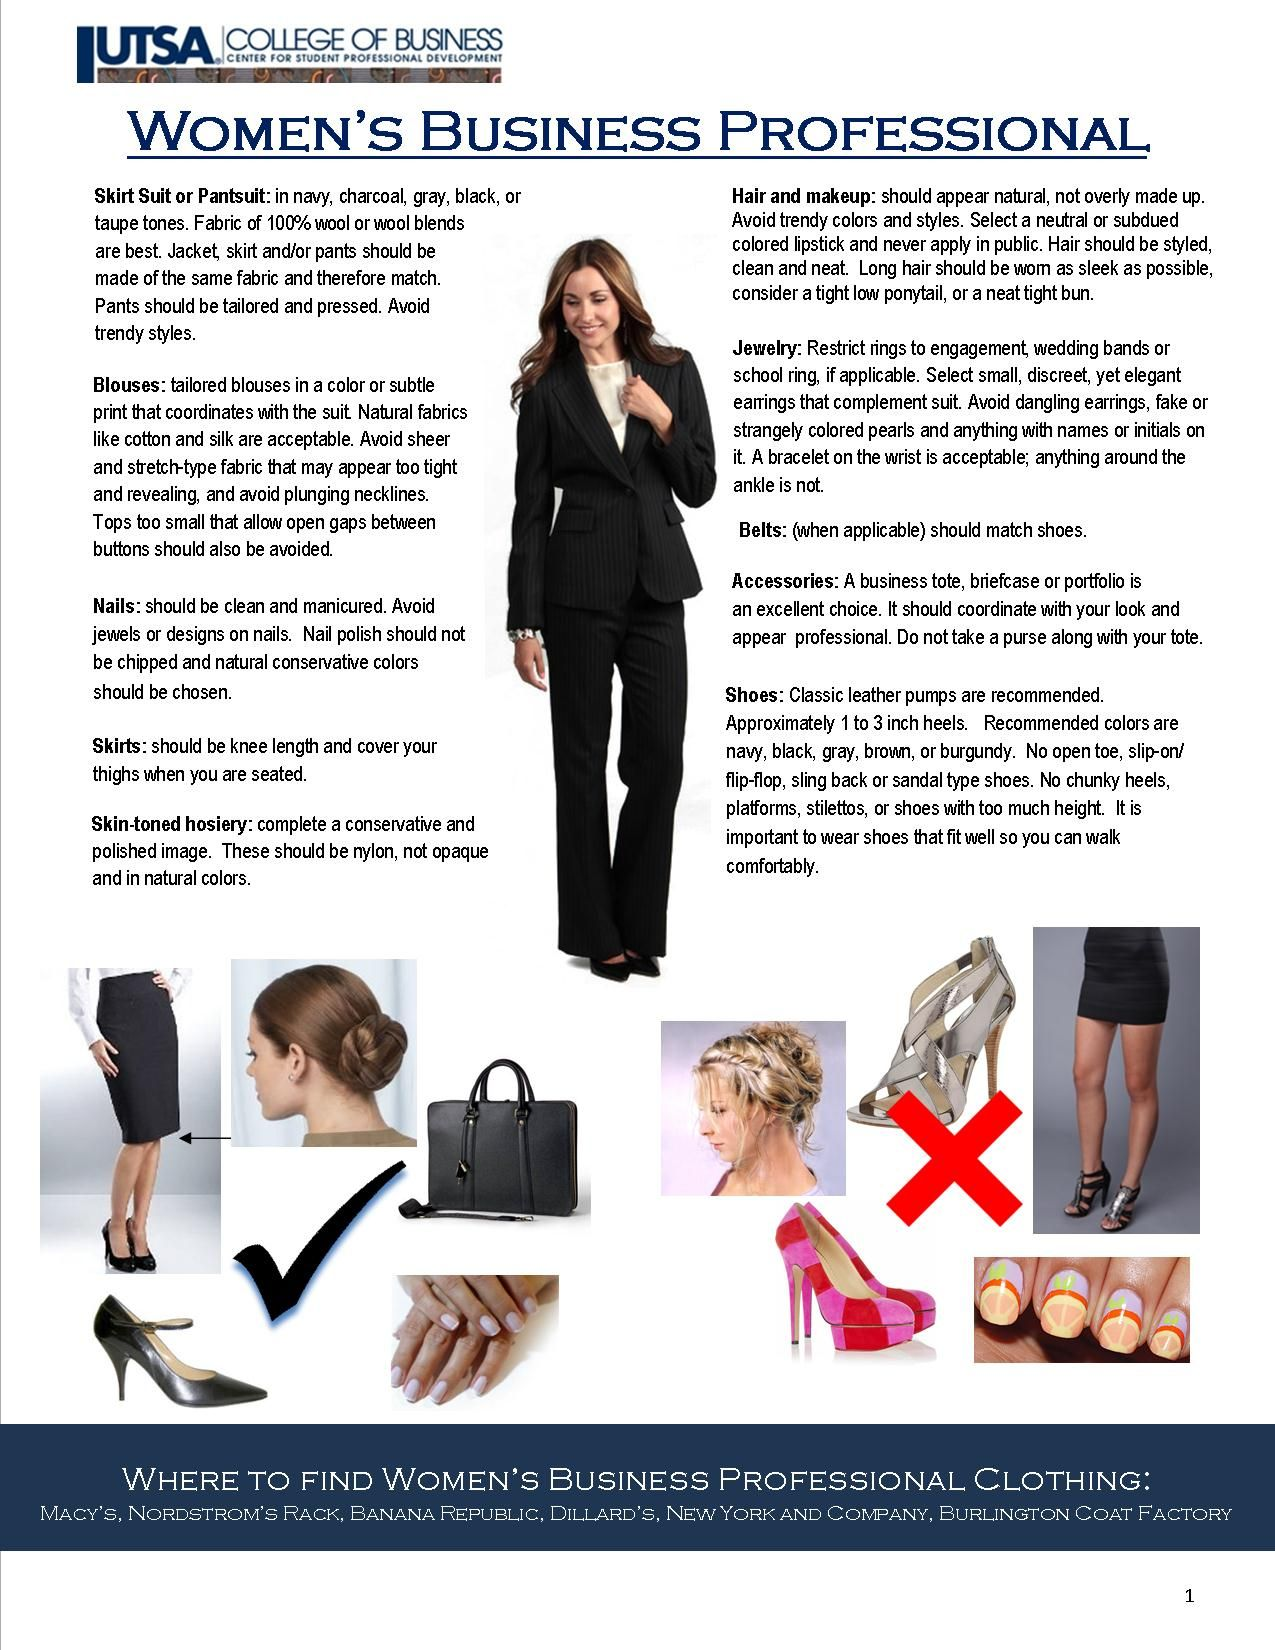 dress to impress business casual vs professional men and women tips for women s business professional dress i wish some of the younger staff i work